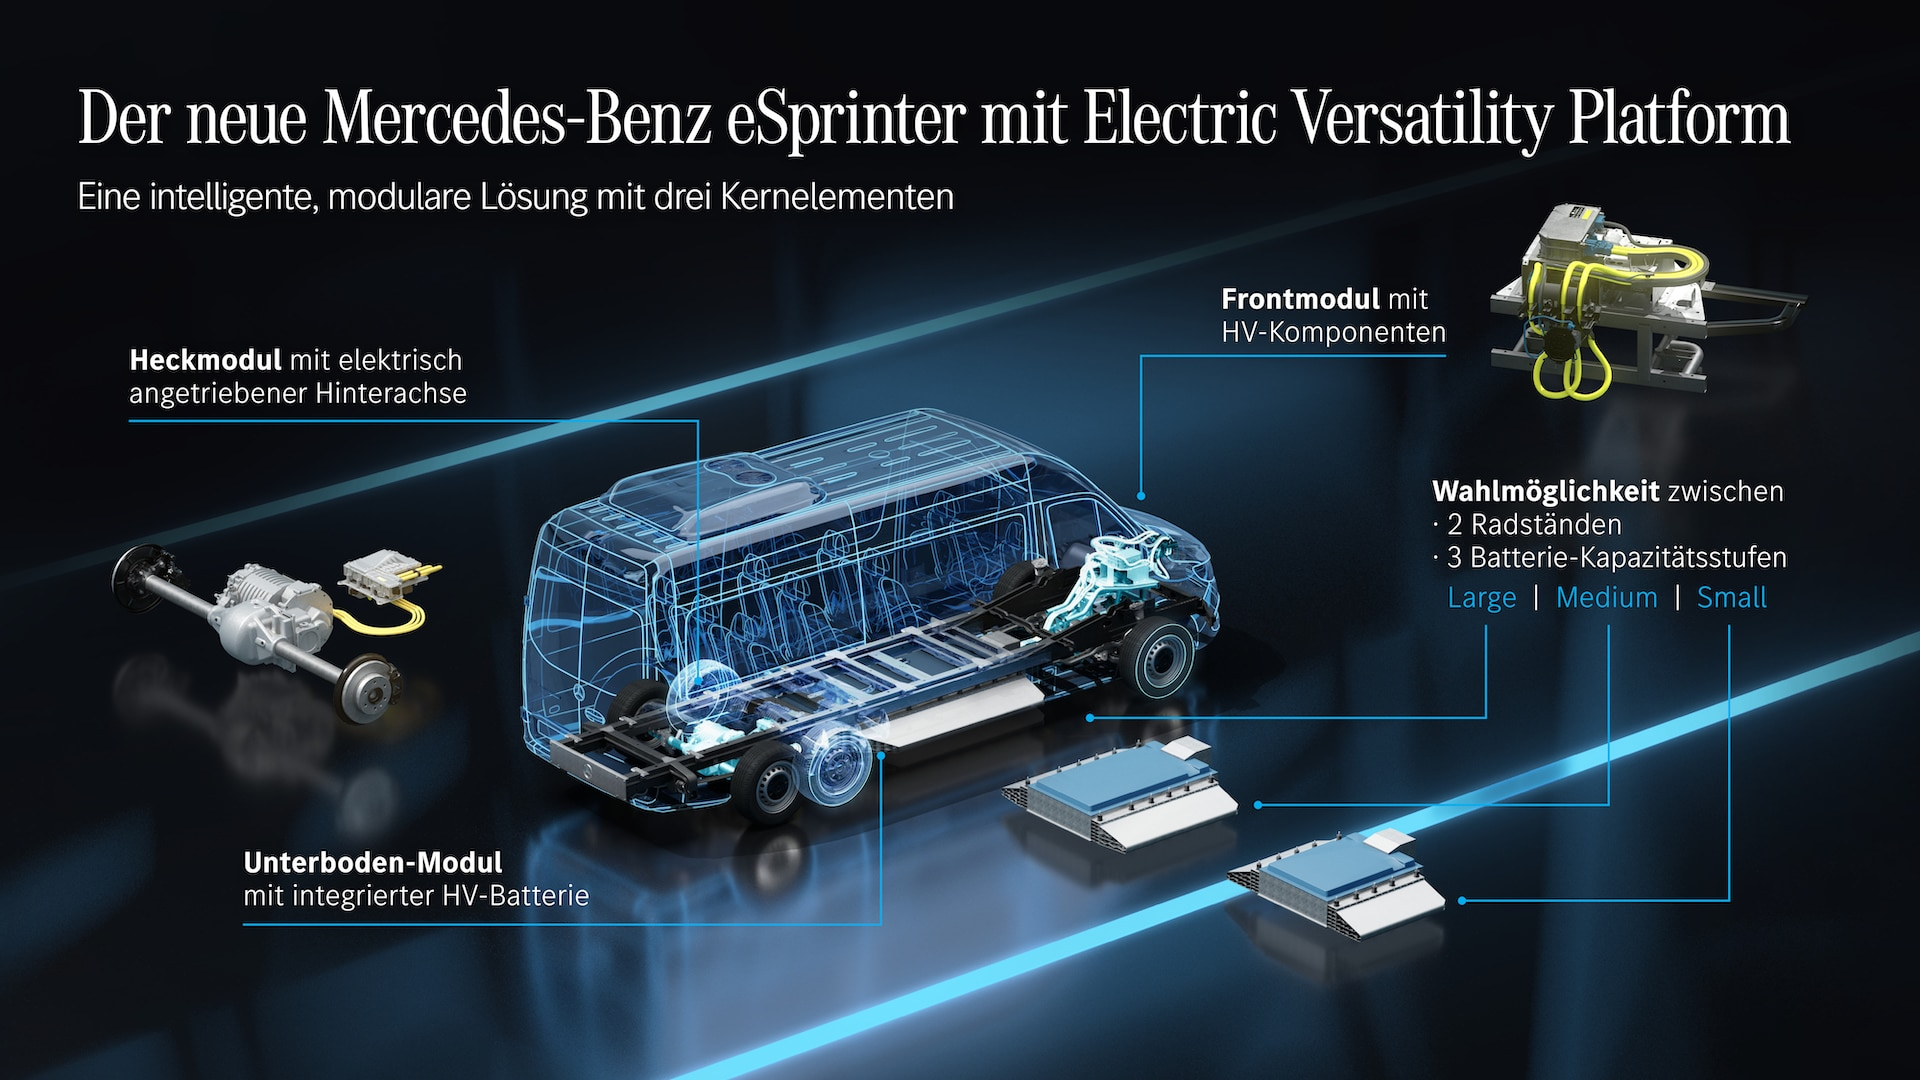 Mercedes-Benz-Elektro-Sprinter-Plattform